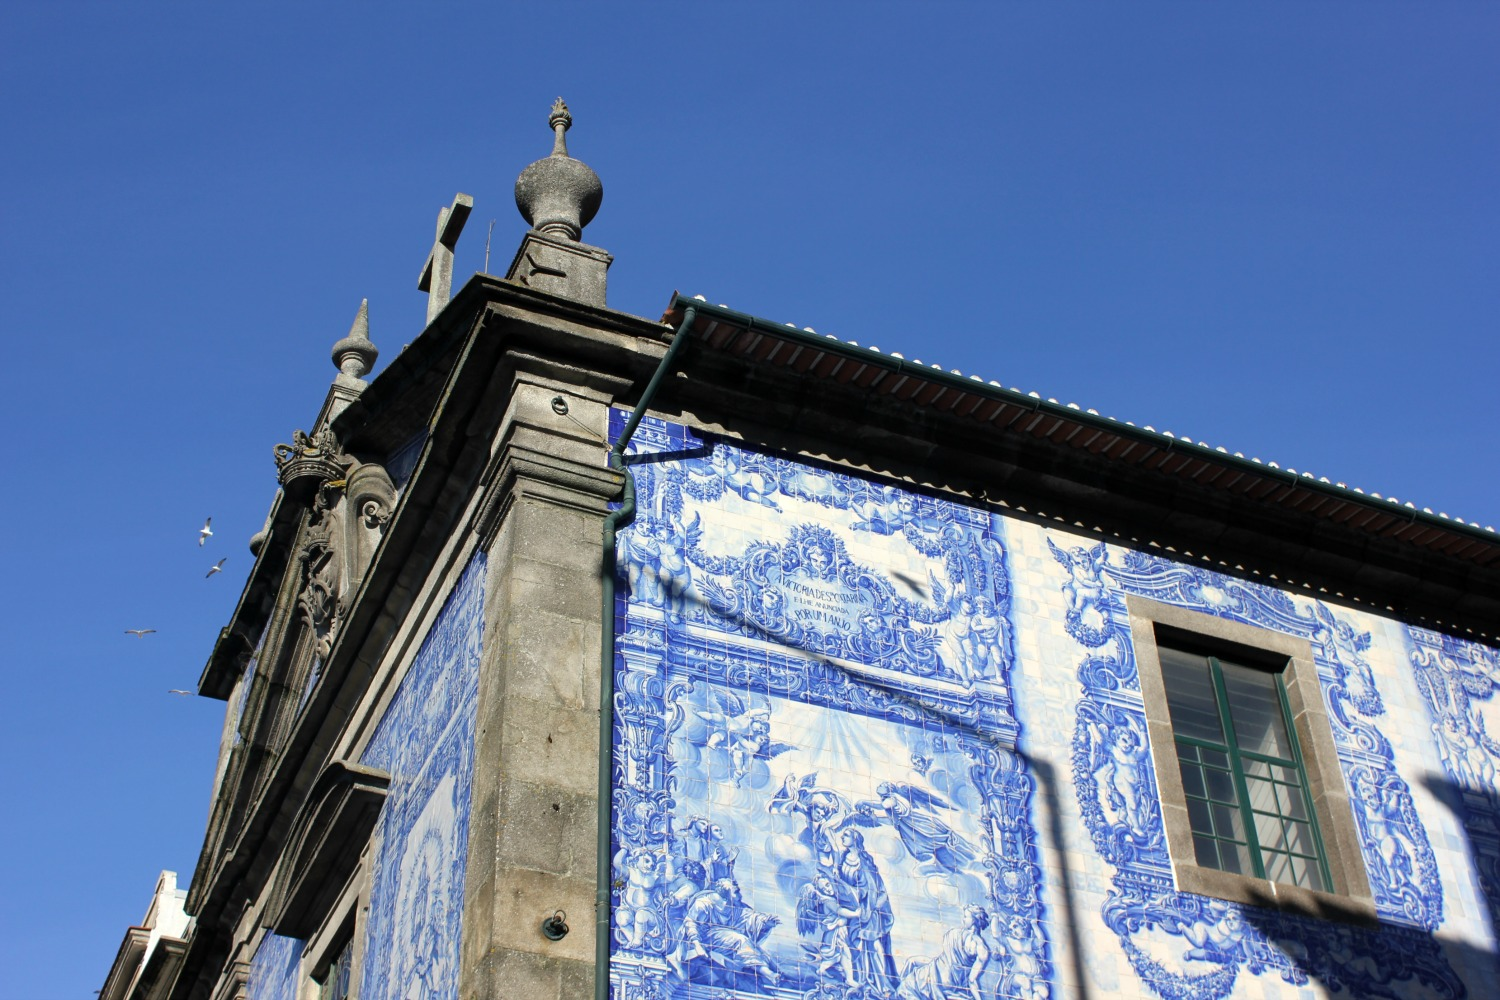 Tiled exterior of an old convent against a blue sky in Porto - my Porto travel tips and lessons for visiting with kids